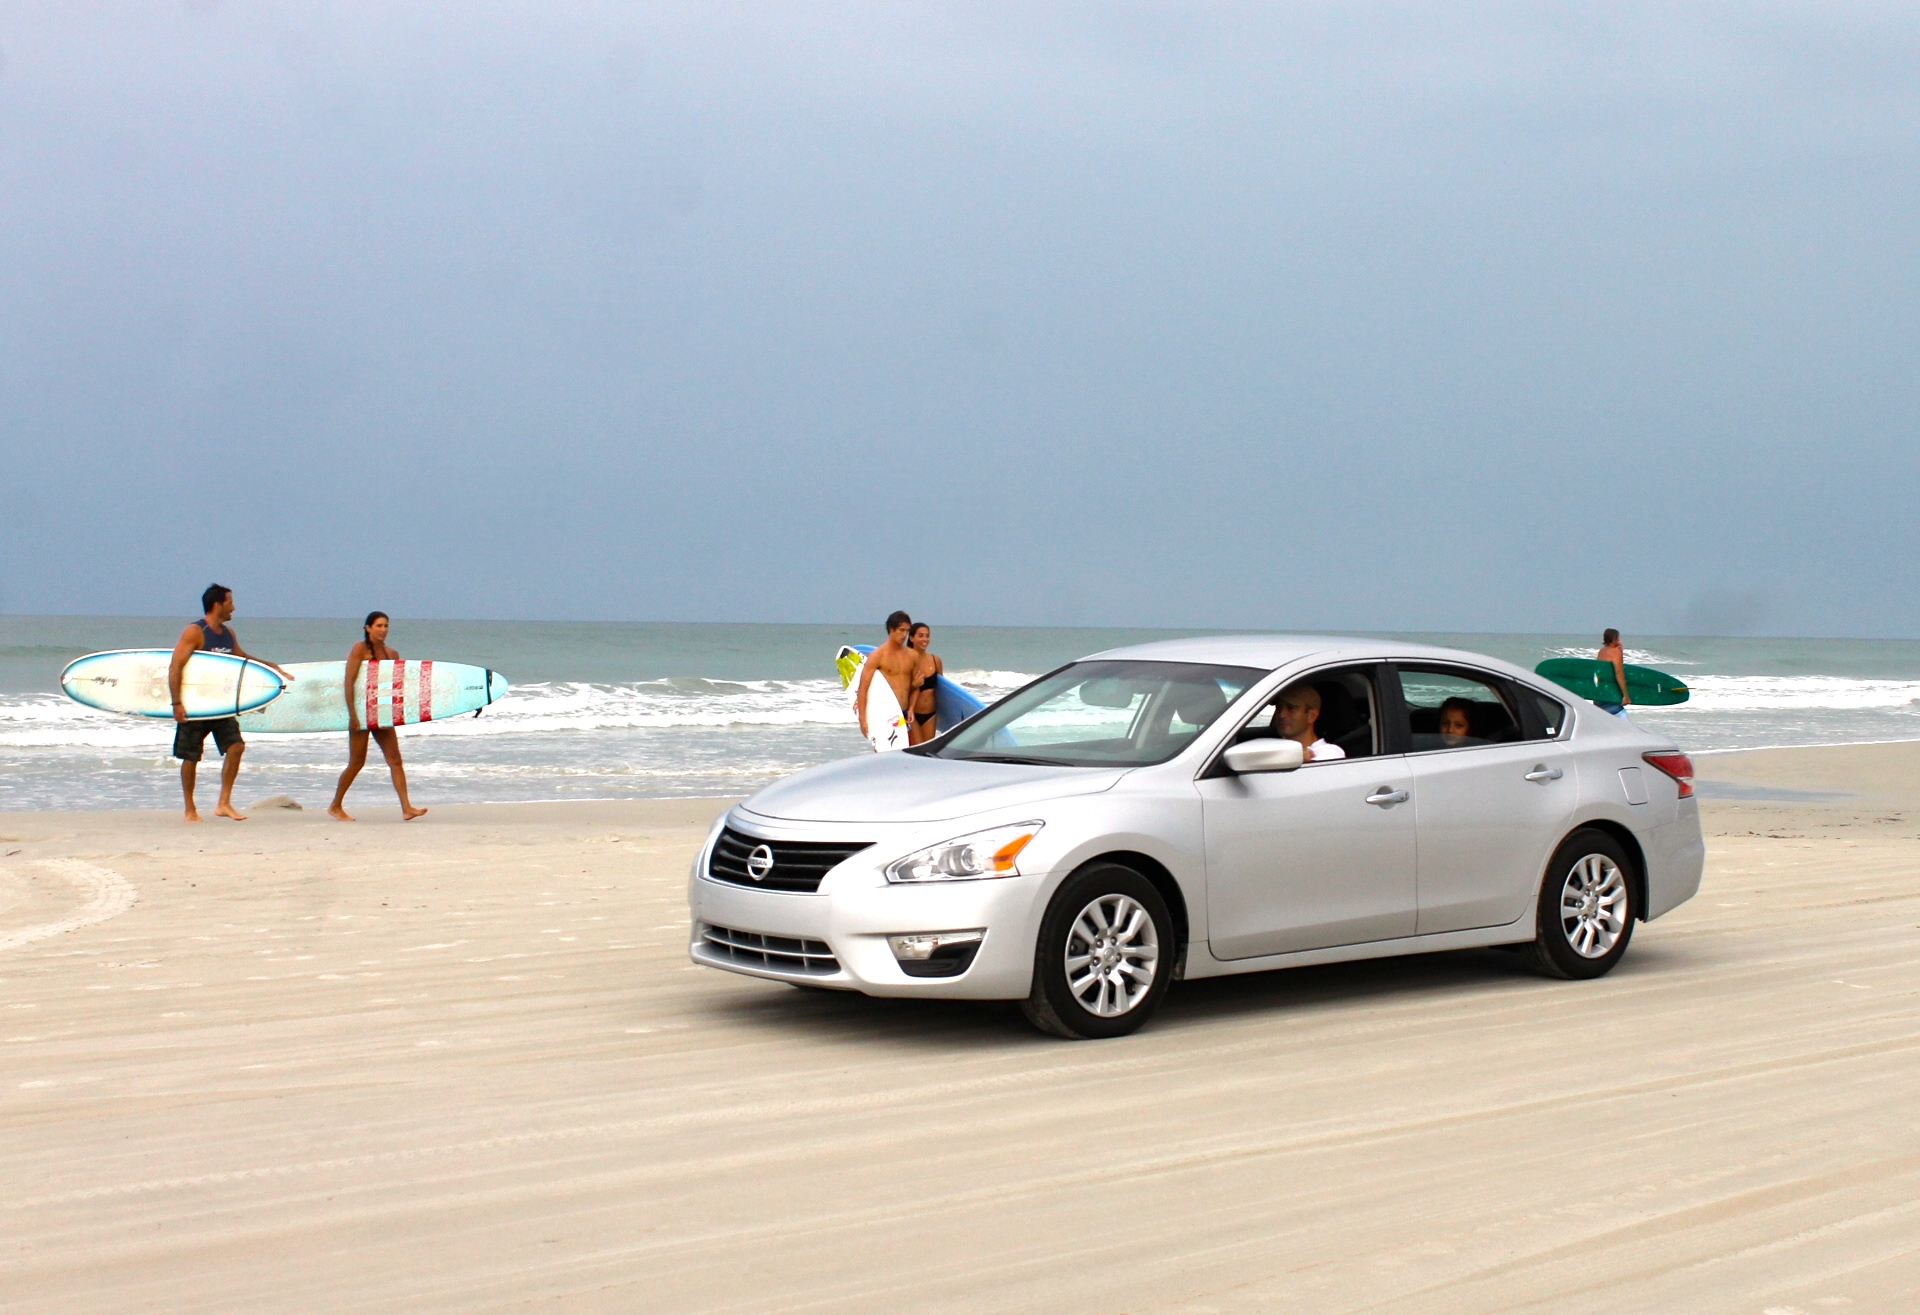 car on the beach with surfers in background at New Smyrna Beach